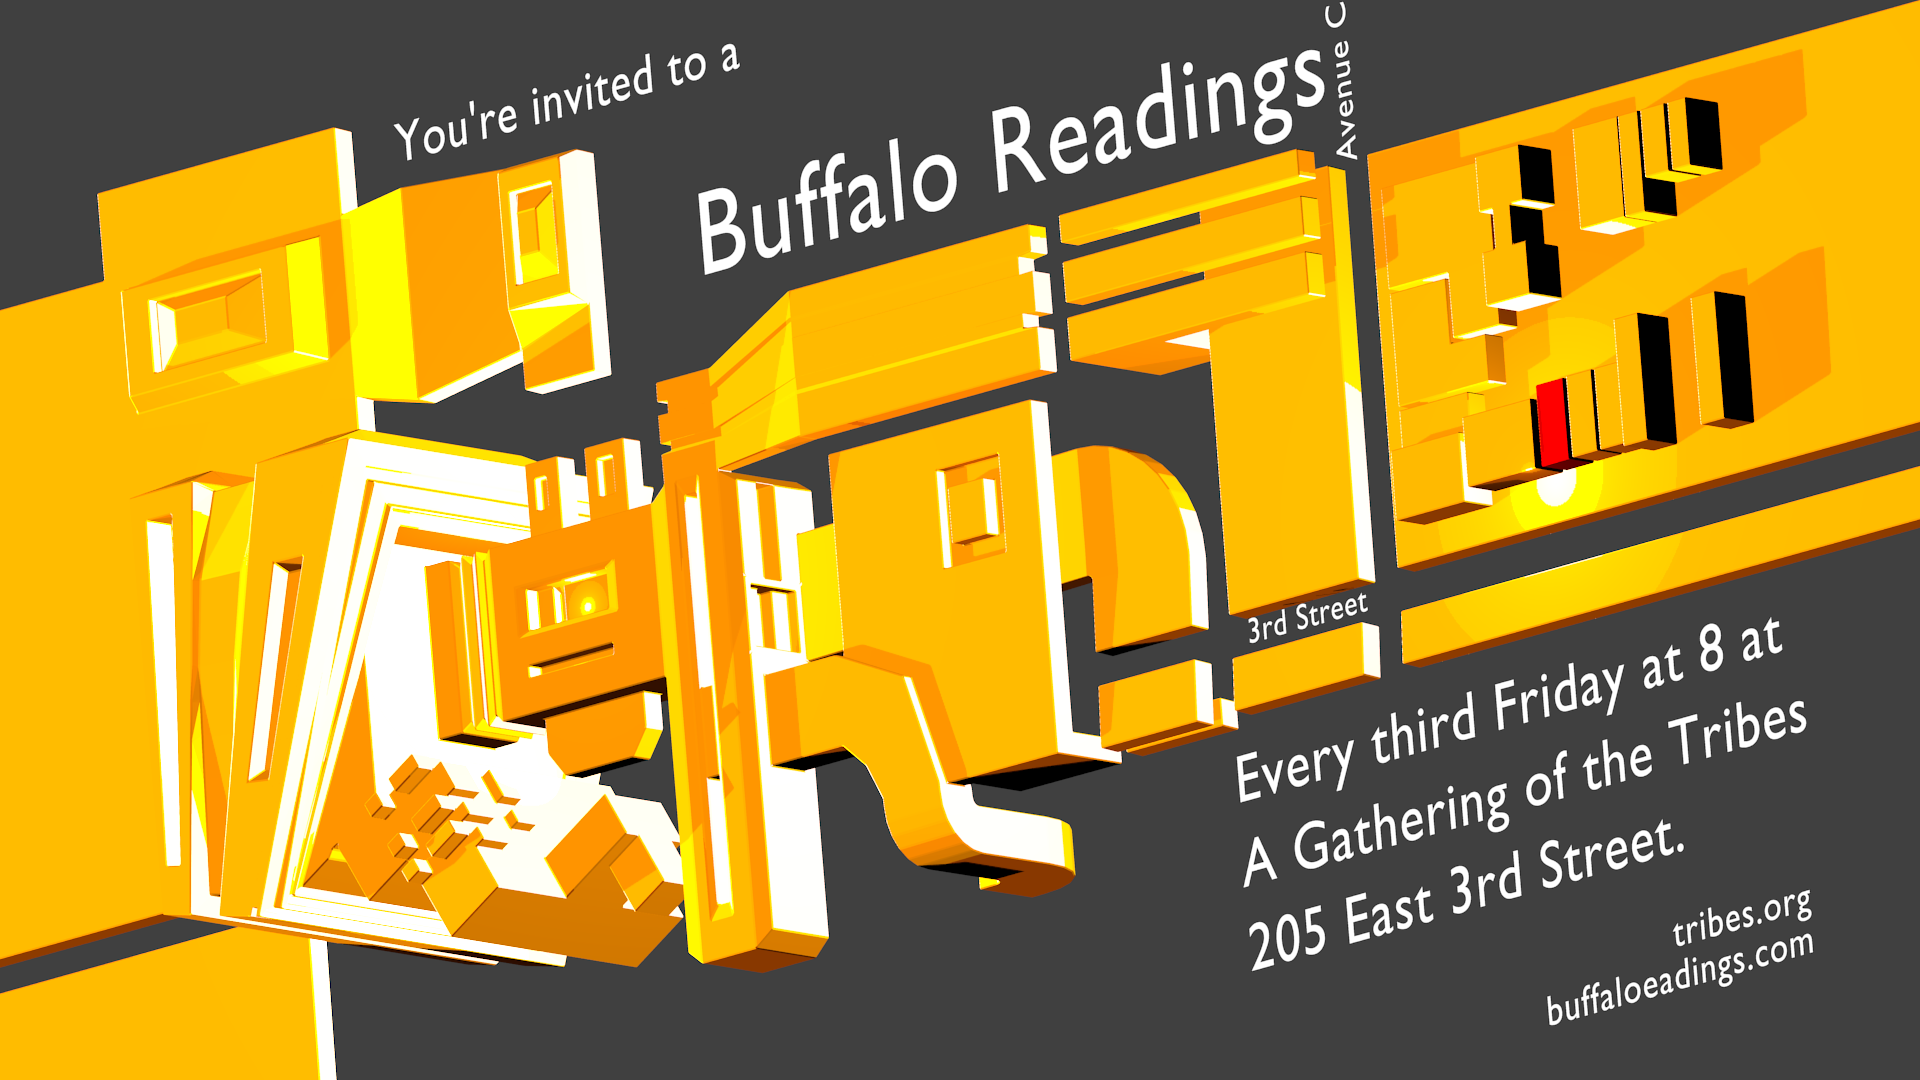 buffaloreadingsattribes_0003.png